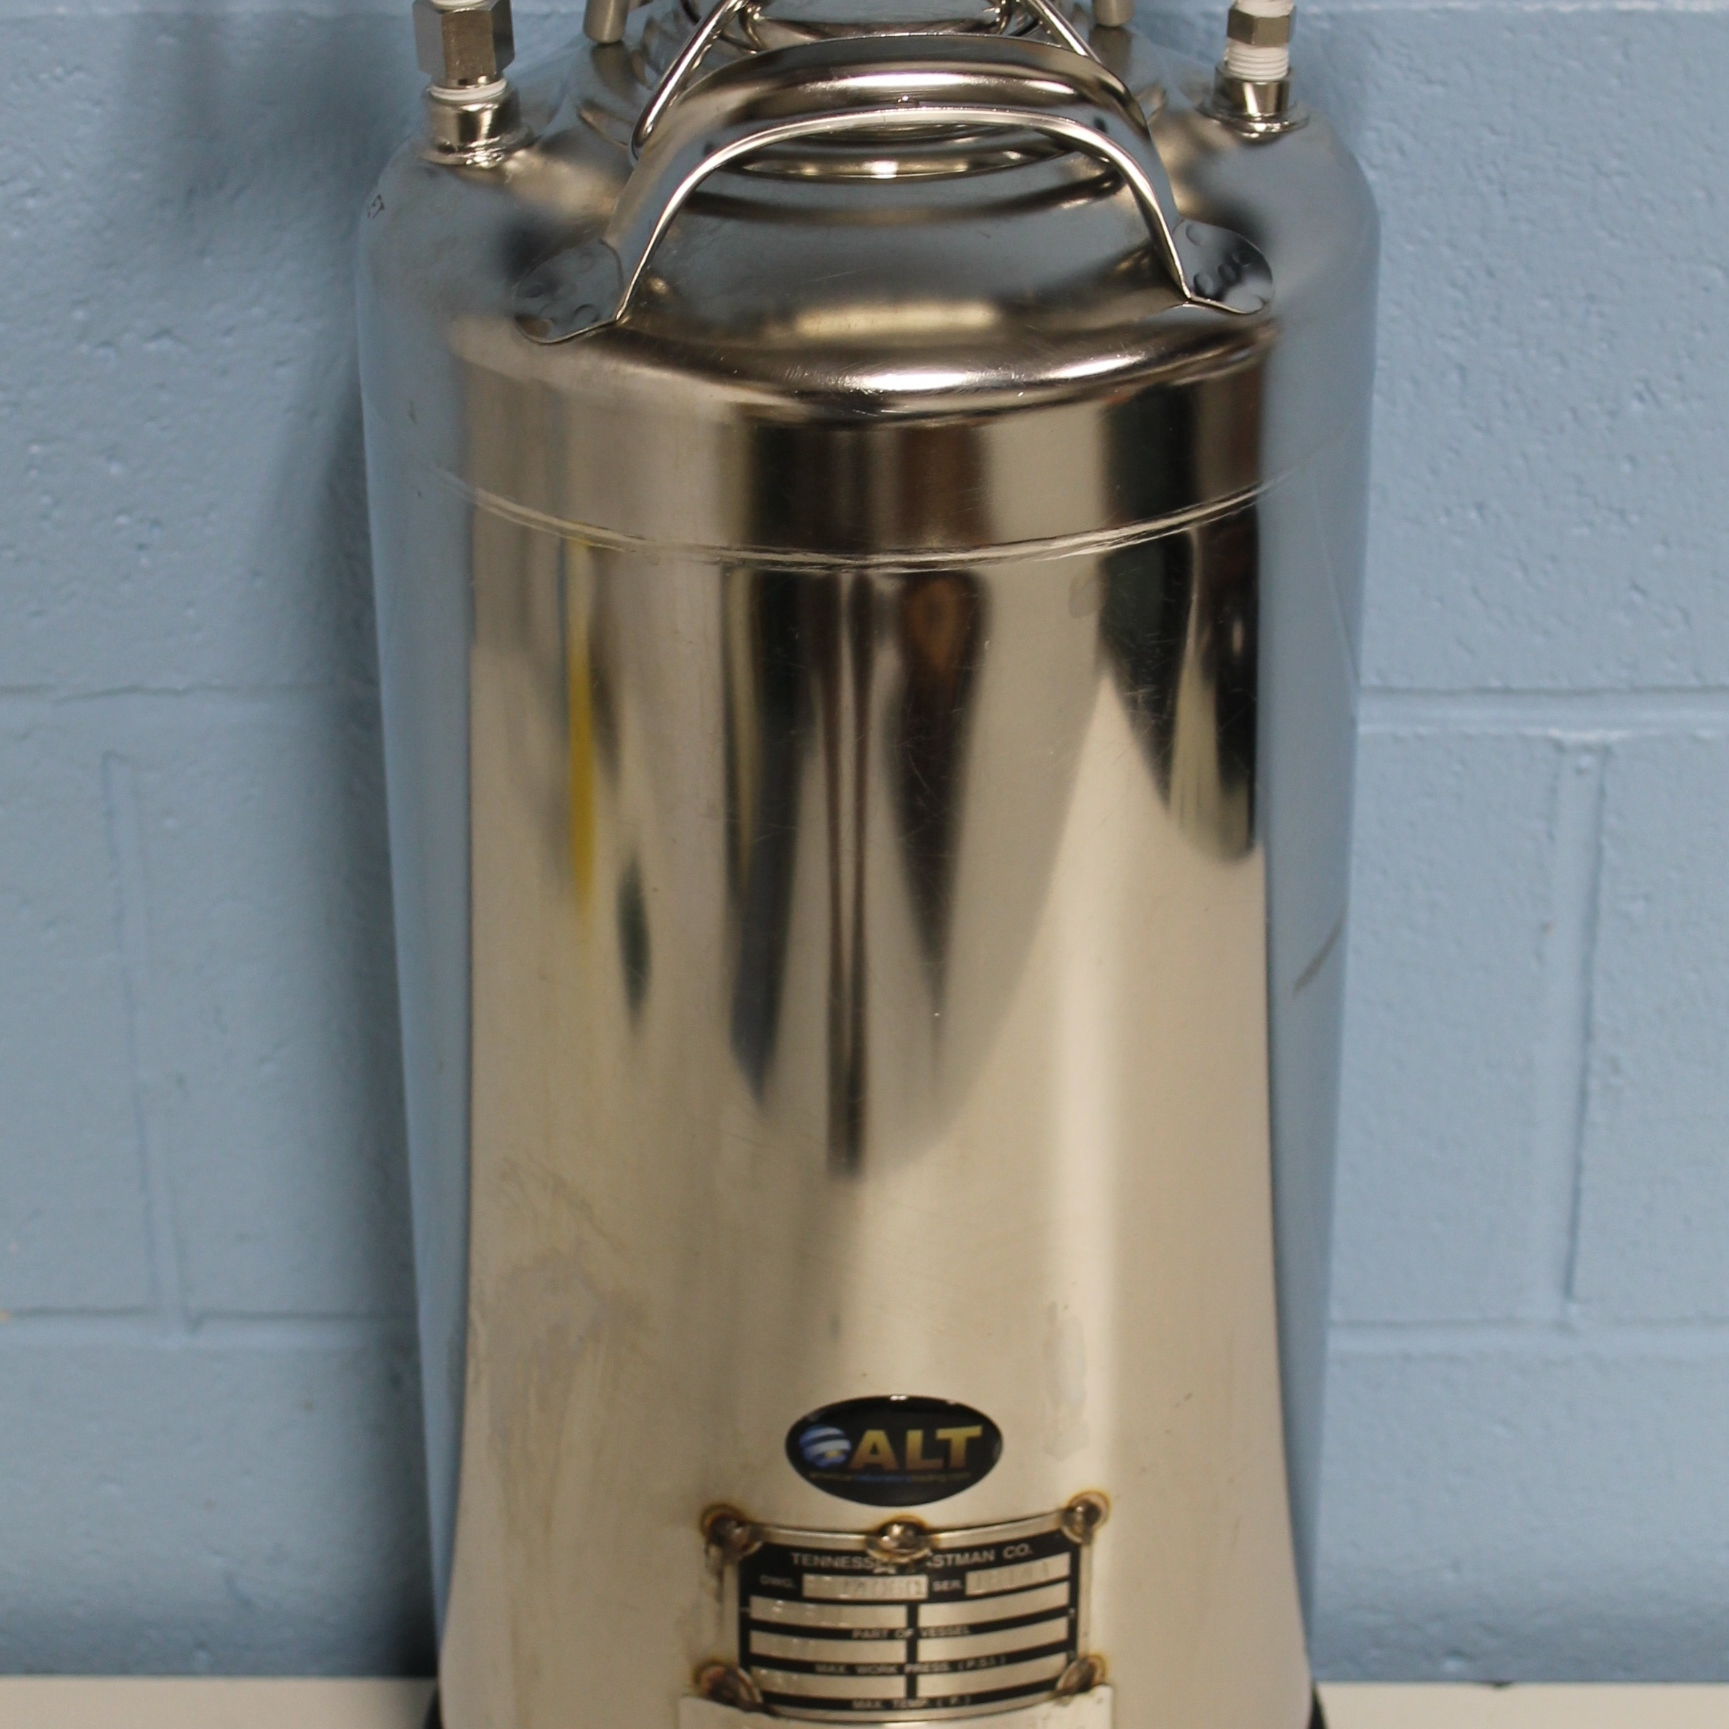 Alloy Products Corp. T316 10 Liter Wide Mouth Opening Stainless Steel Rubber Skirt Pressure Vessel Image